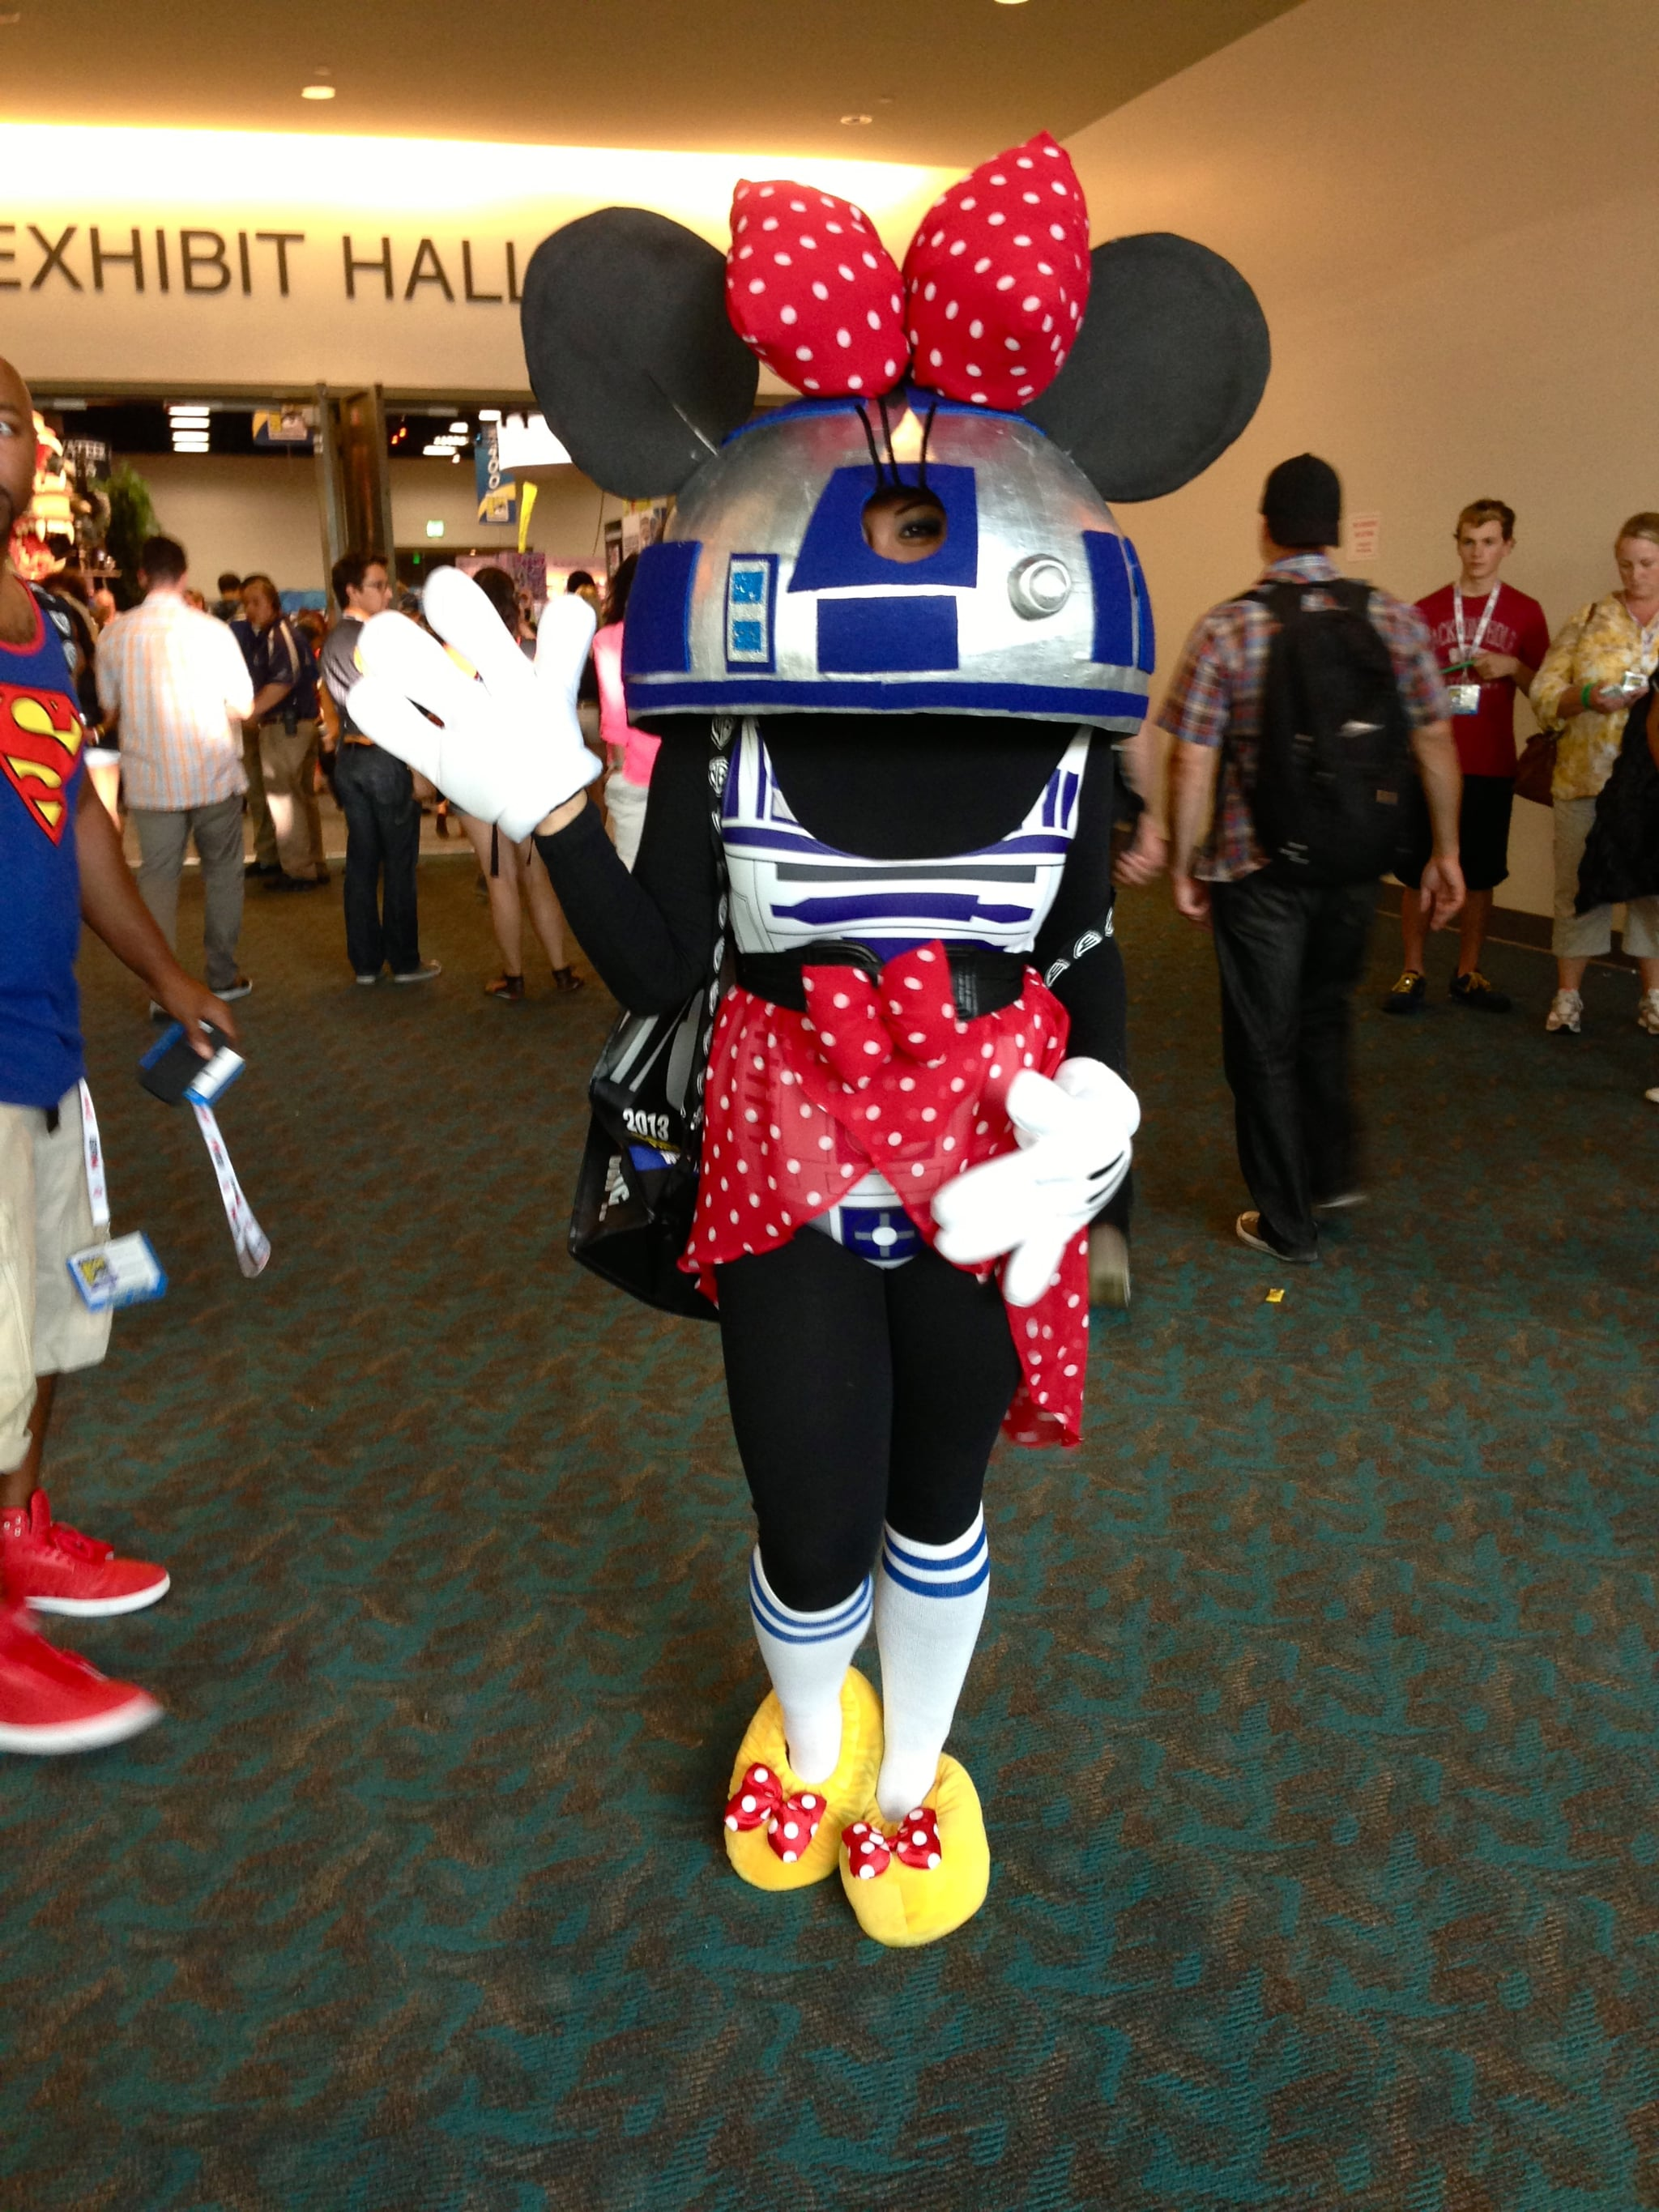 This R2D2-Minnie Mouse mashup is too geek chic for words.